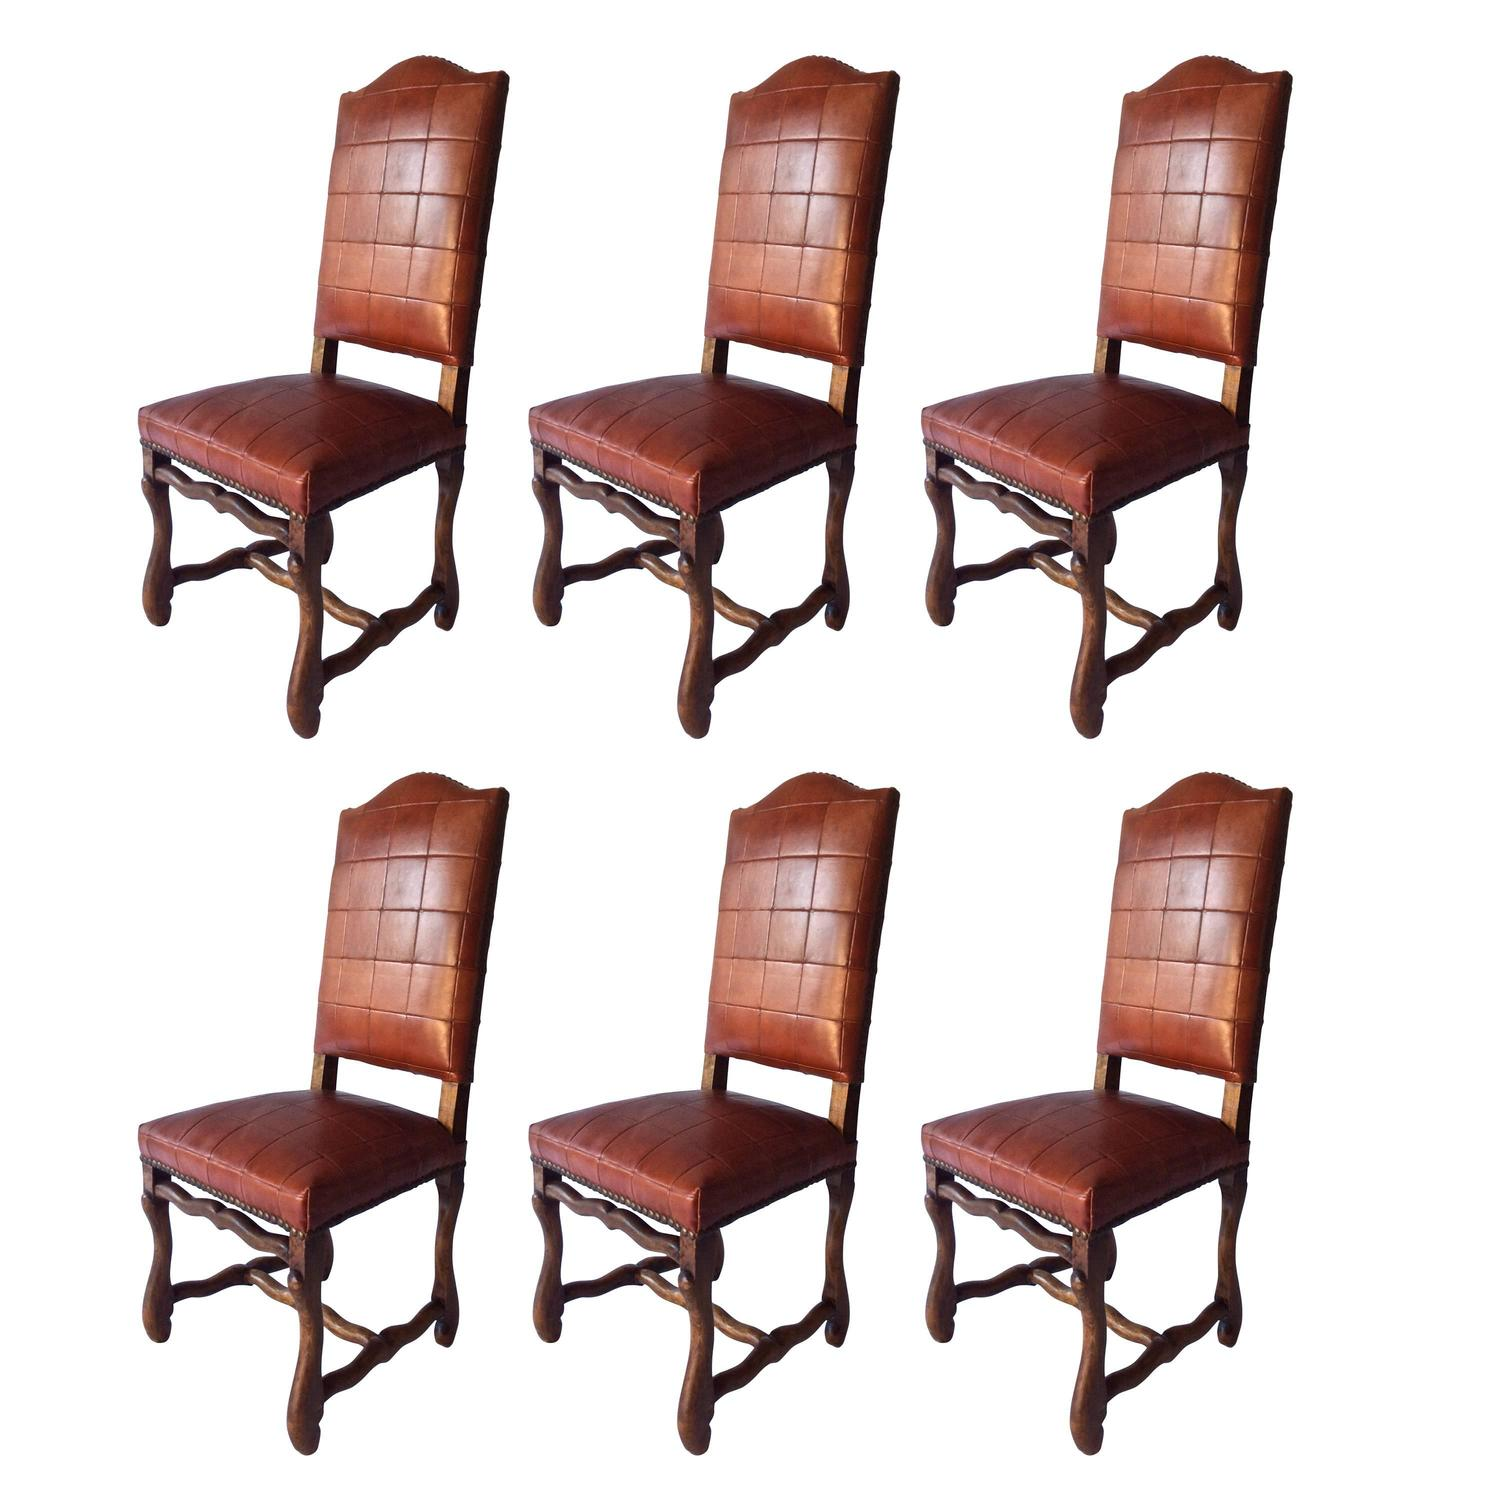 Set of Six Antiques Os Du Mouton Chairs in Oxblood Red Leather